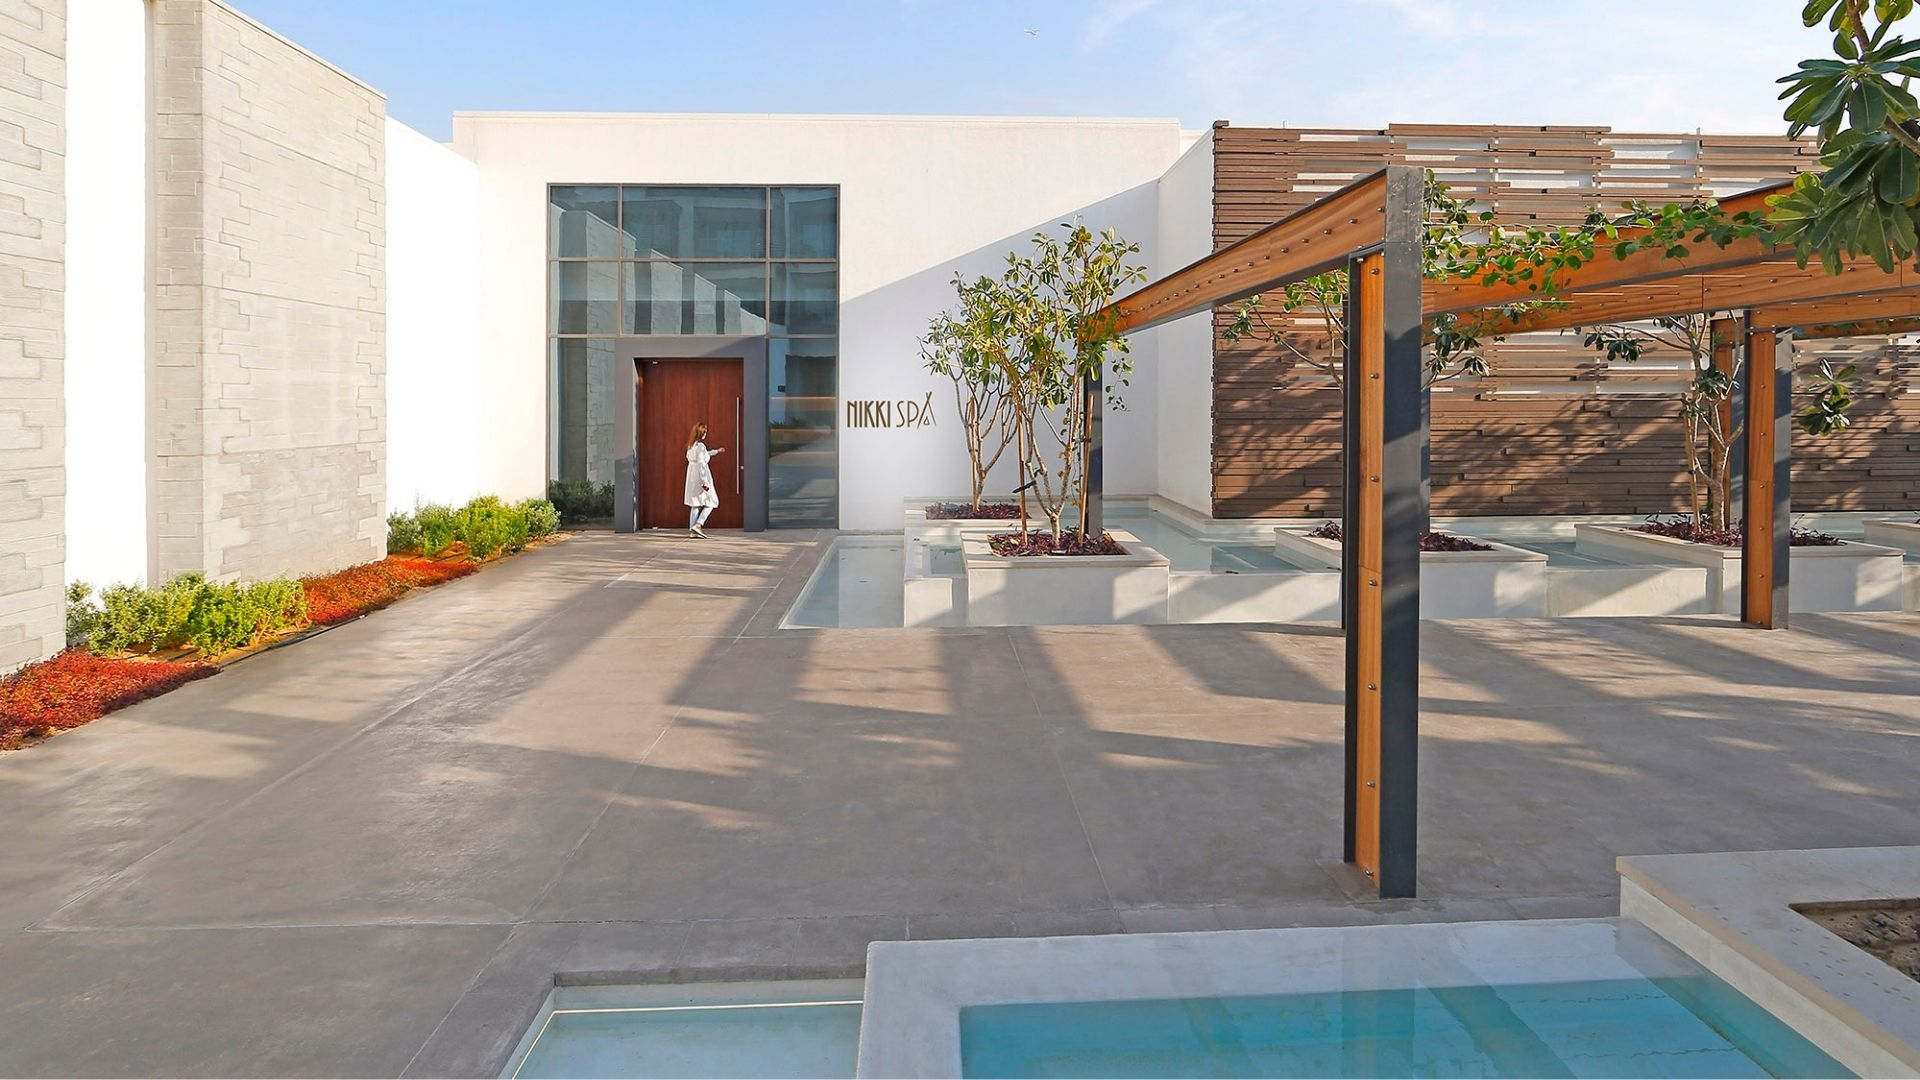 Tried & Tested: Hydrating Clarins Facial, NikkiSpa